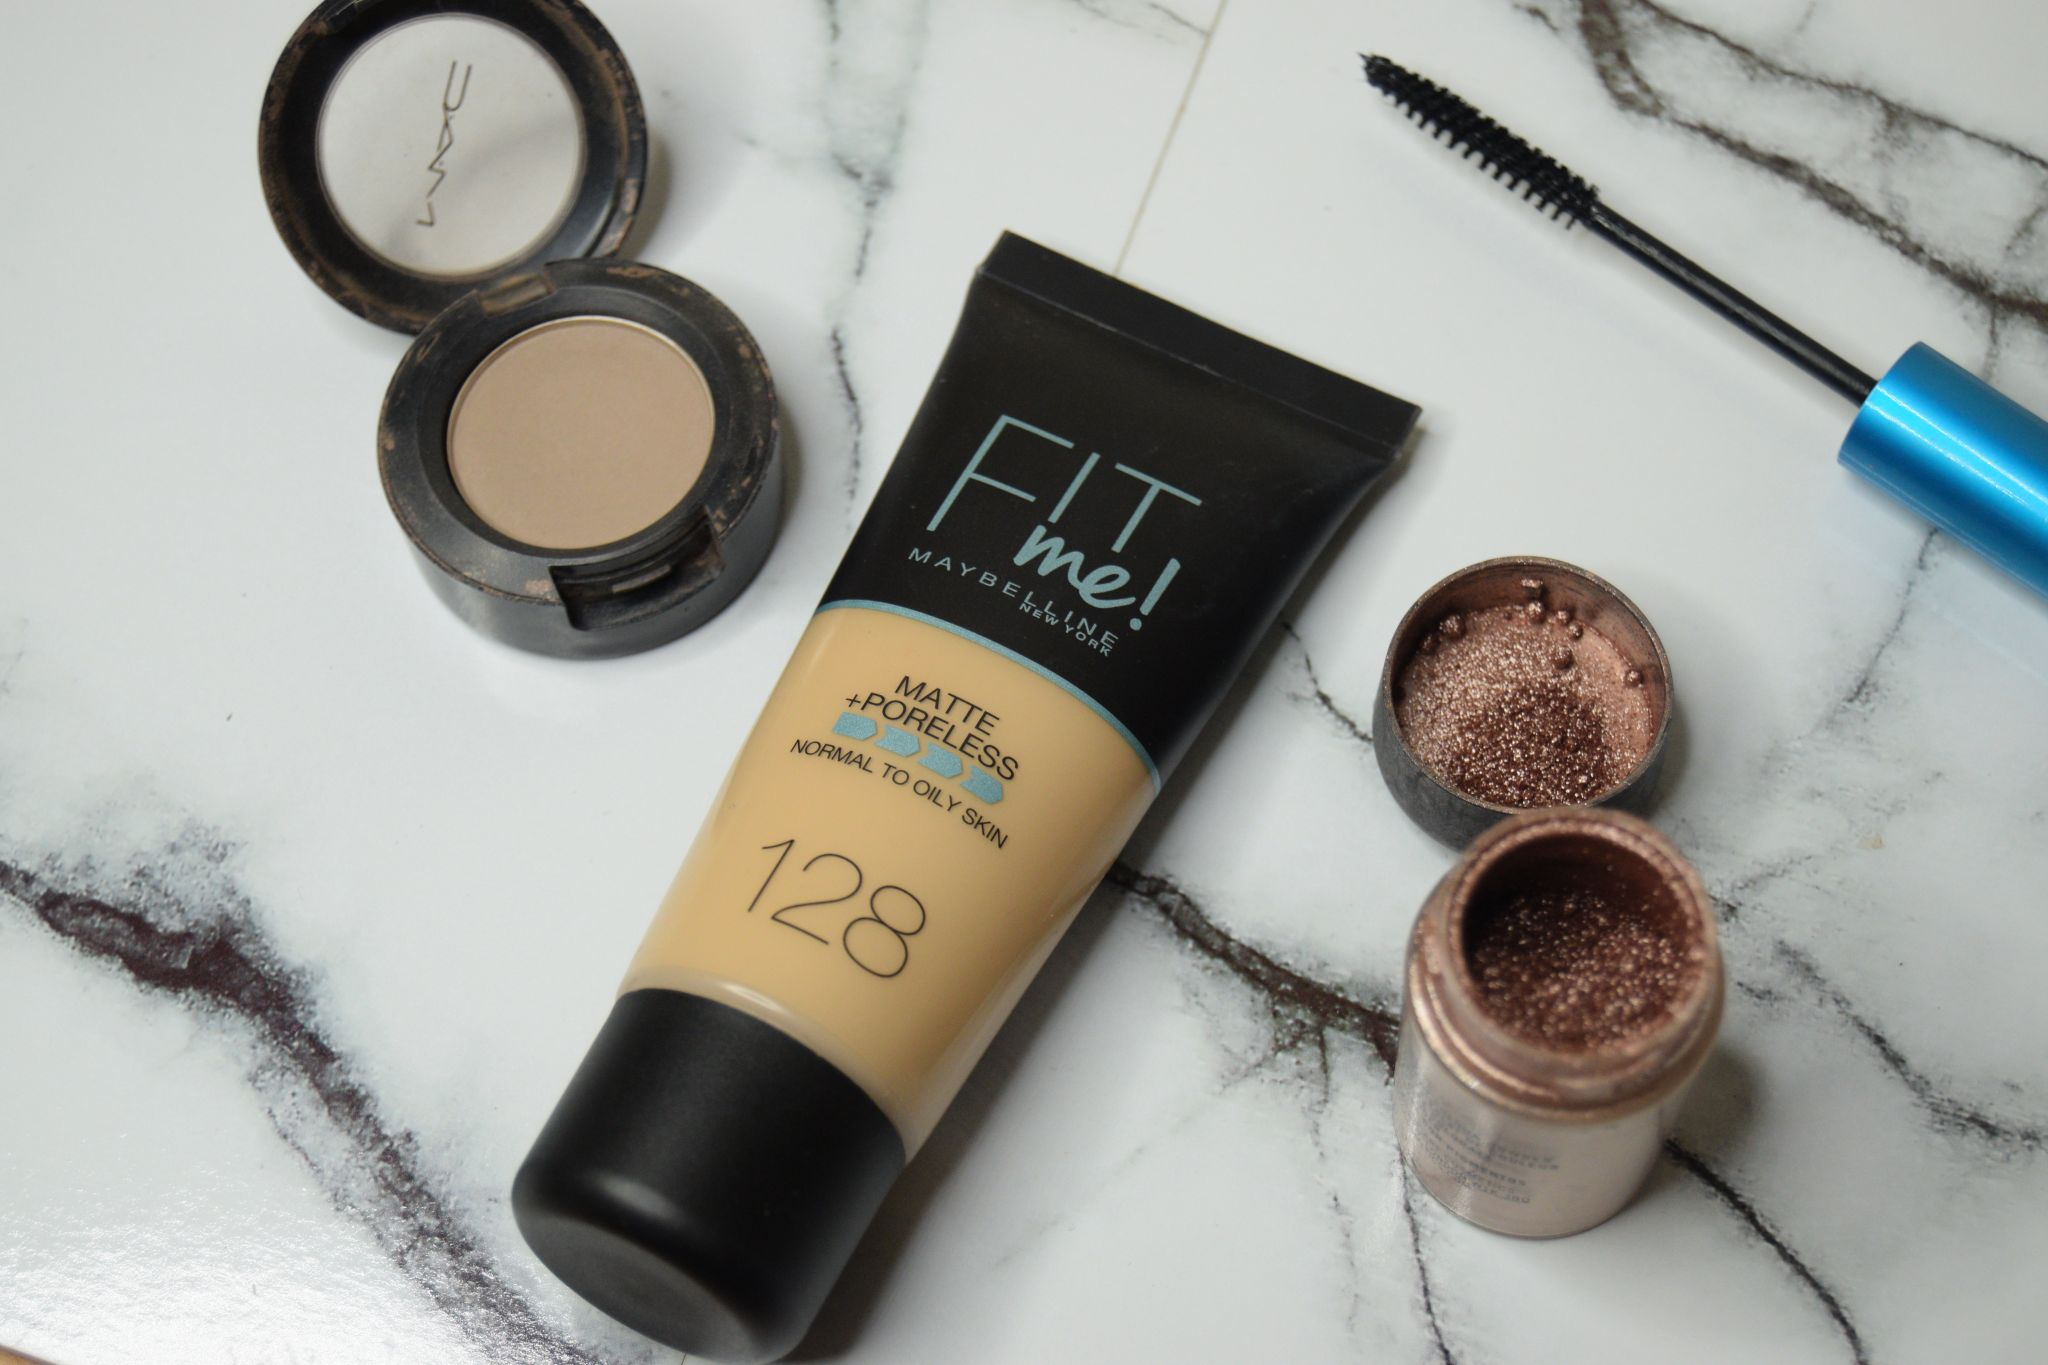 DSC 1463 1440x960 - Top 3 Drugstore Foundations